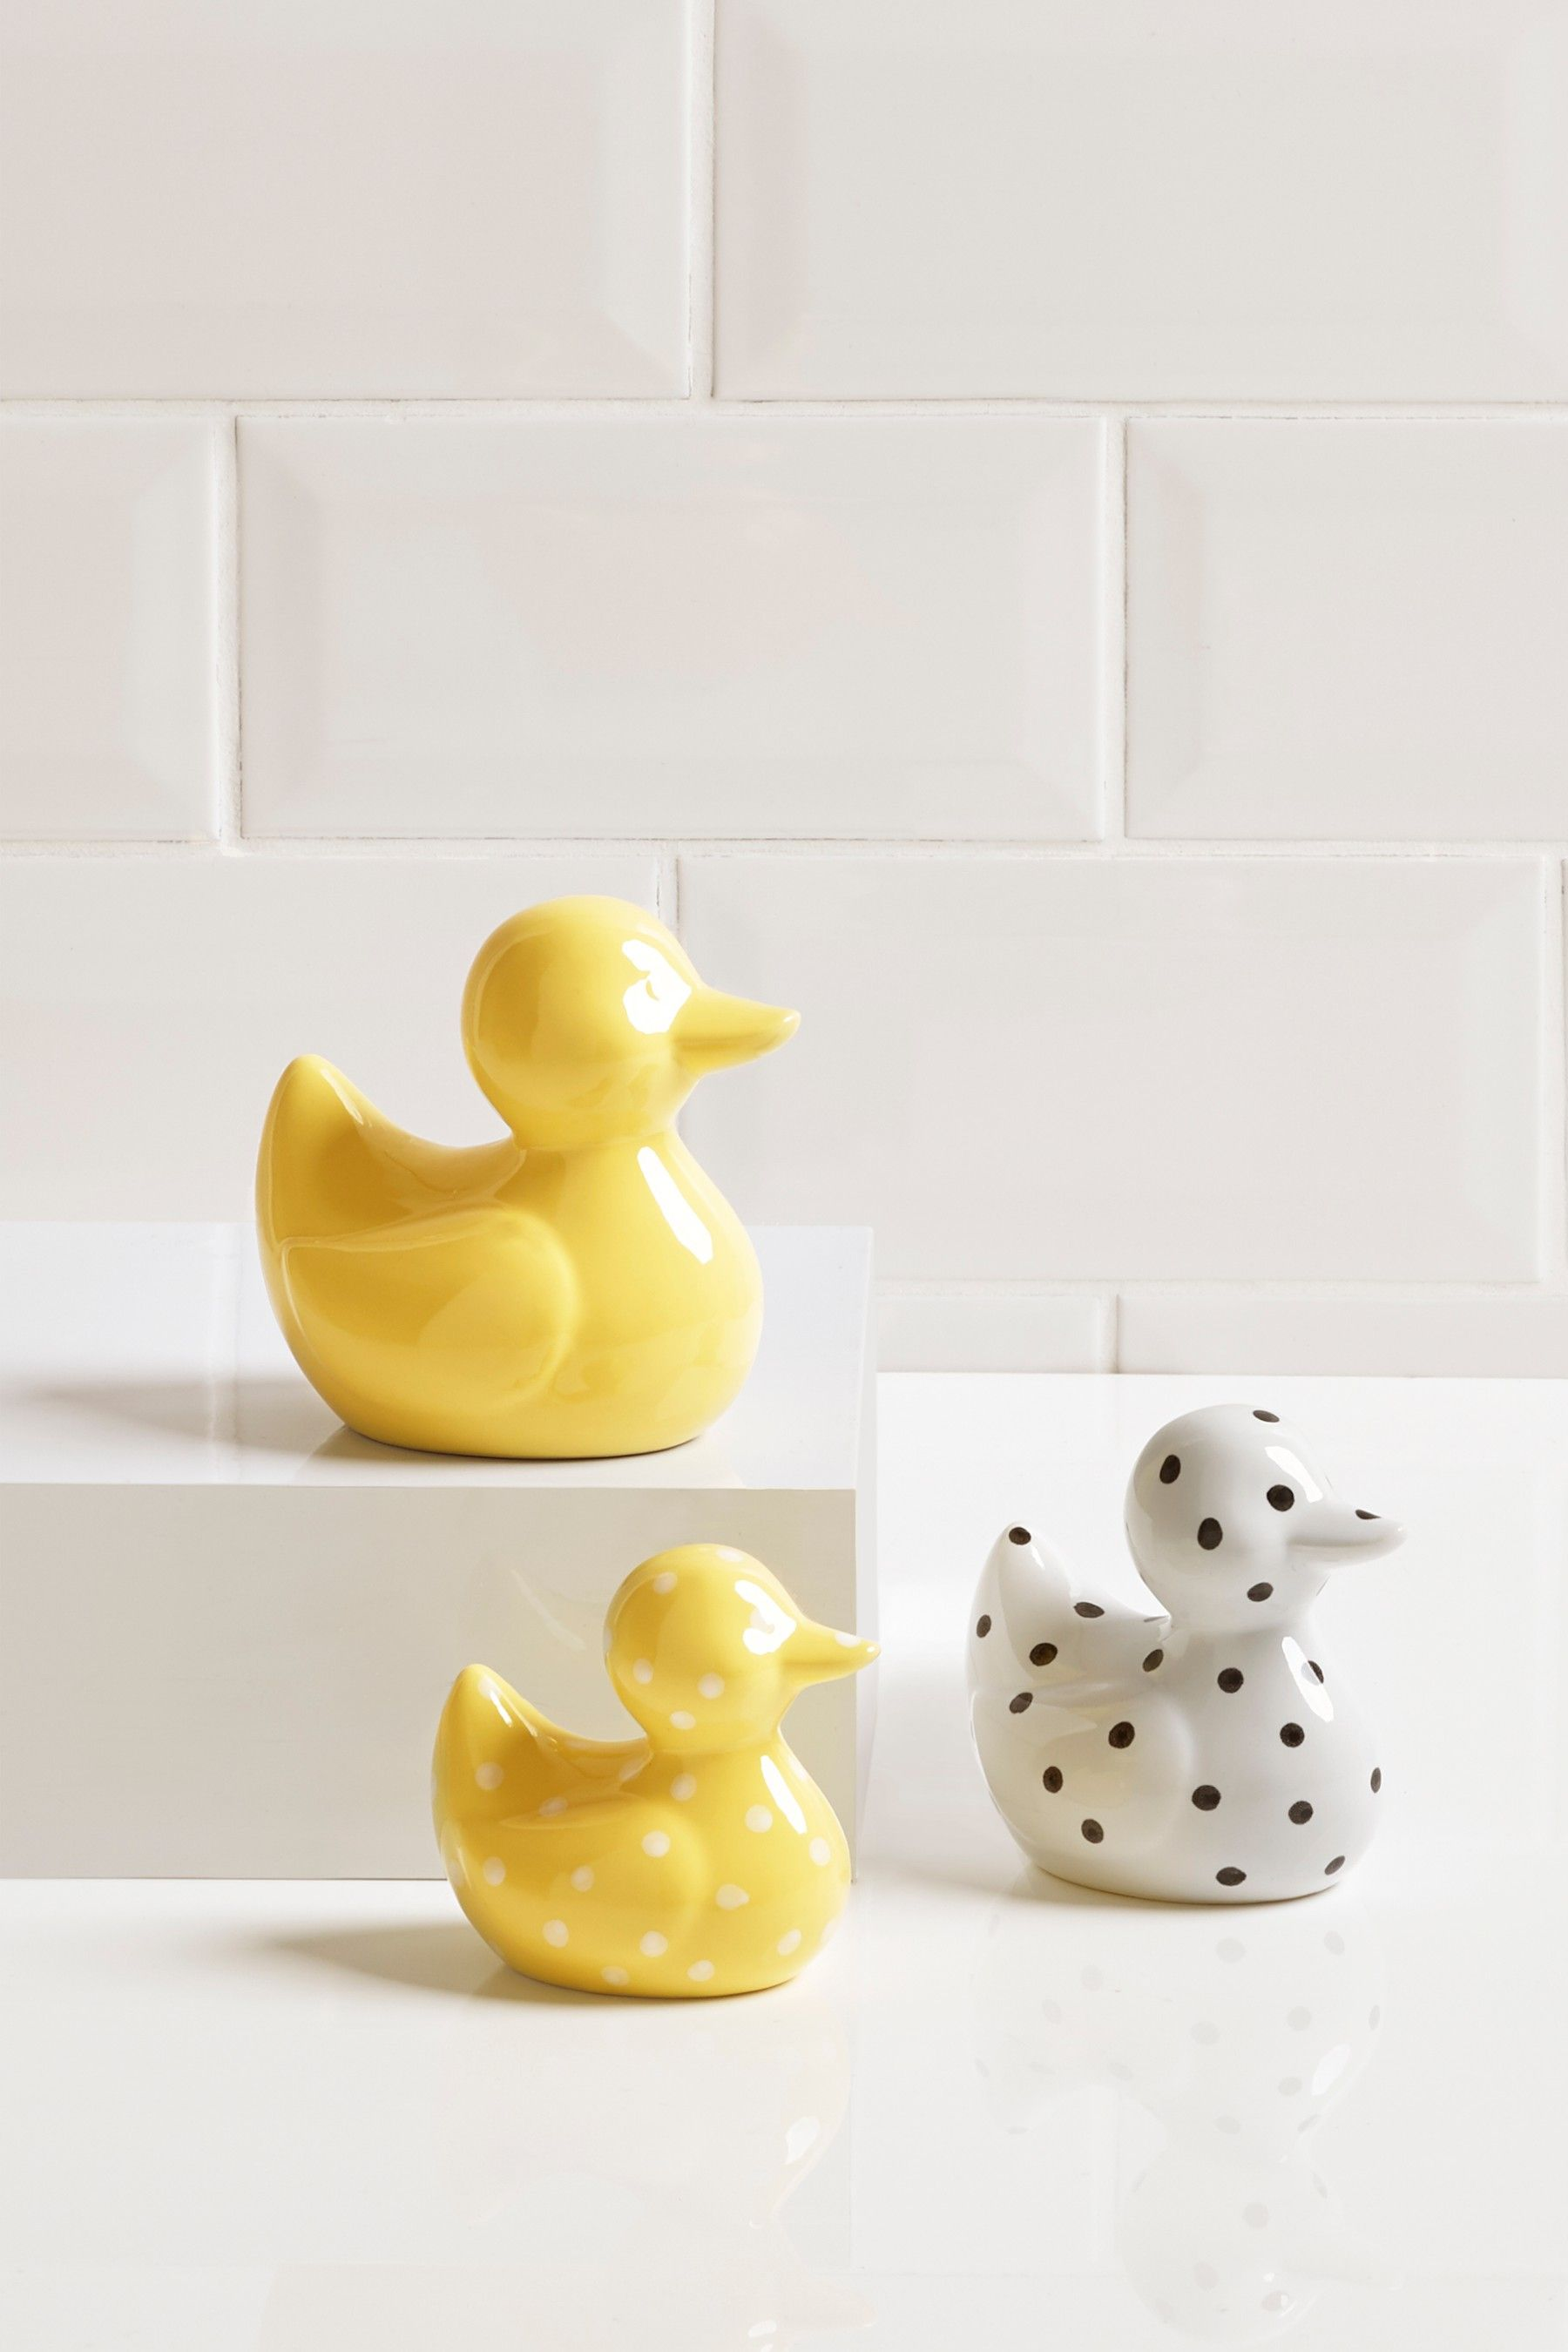 Next Set Of 3 Ceramic Ducks Yellow Bathroom Ornaments Bathroom Decor Bathroom Accessories